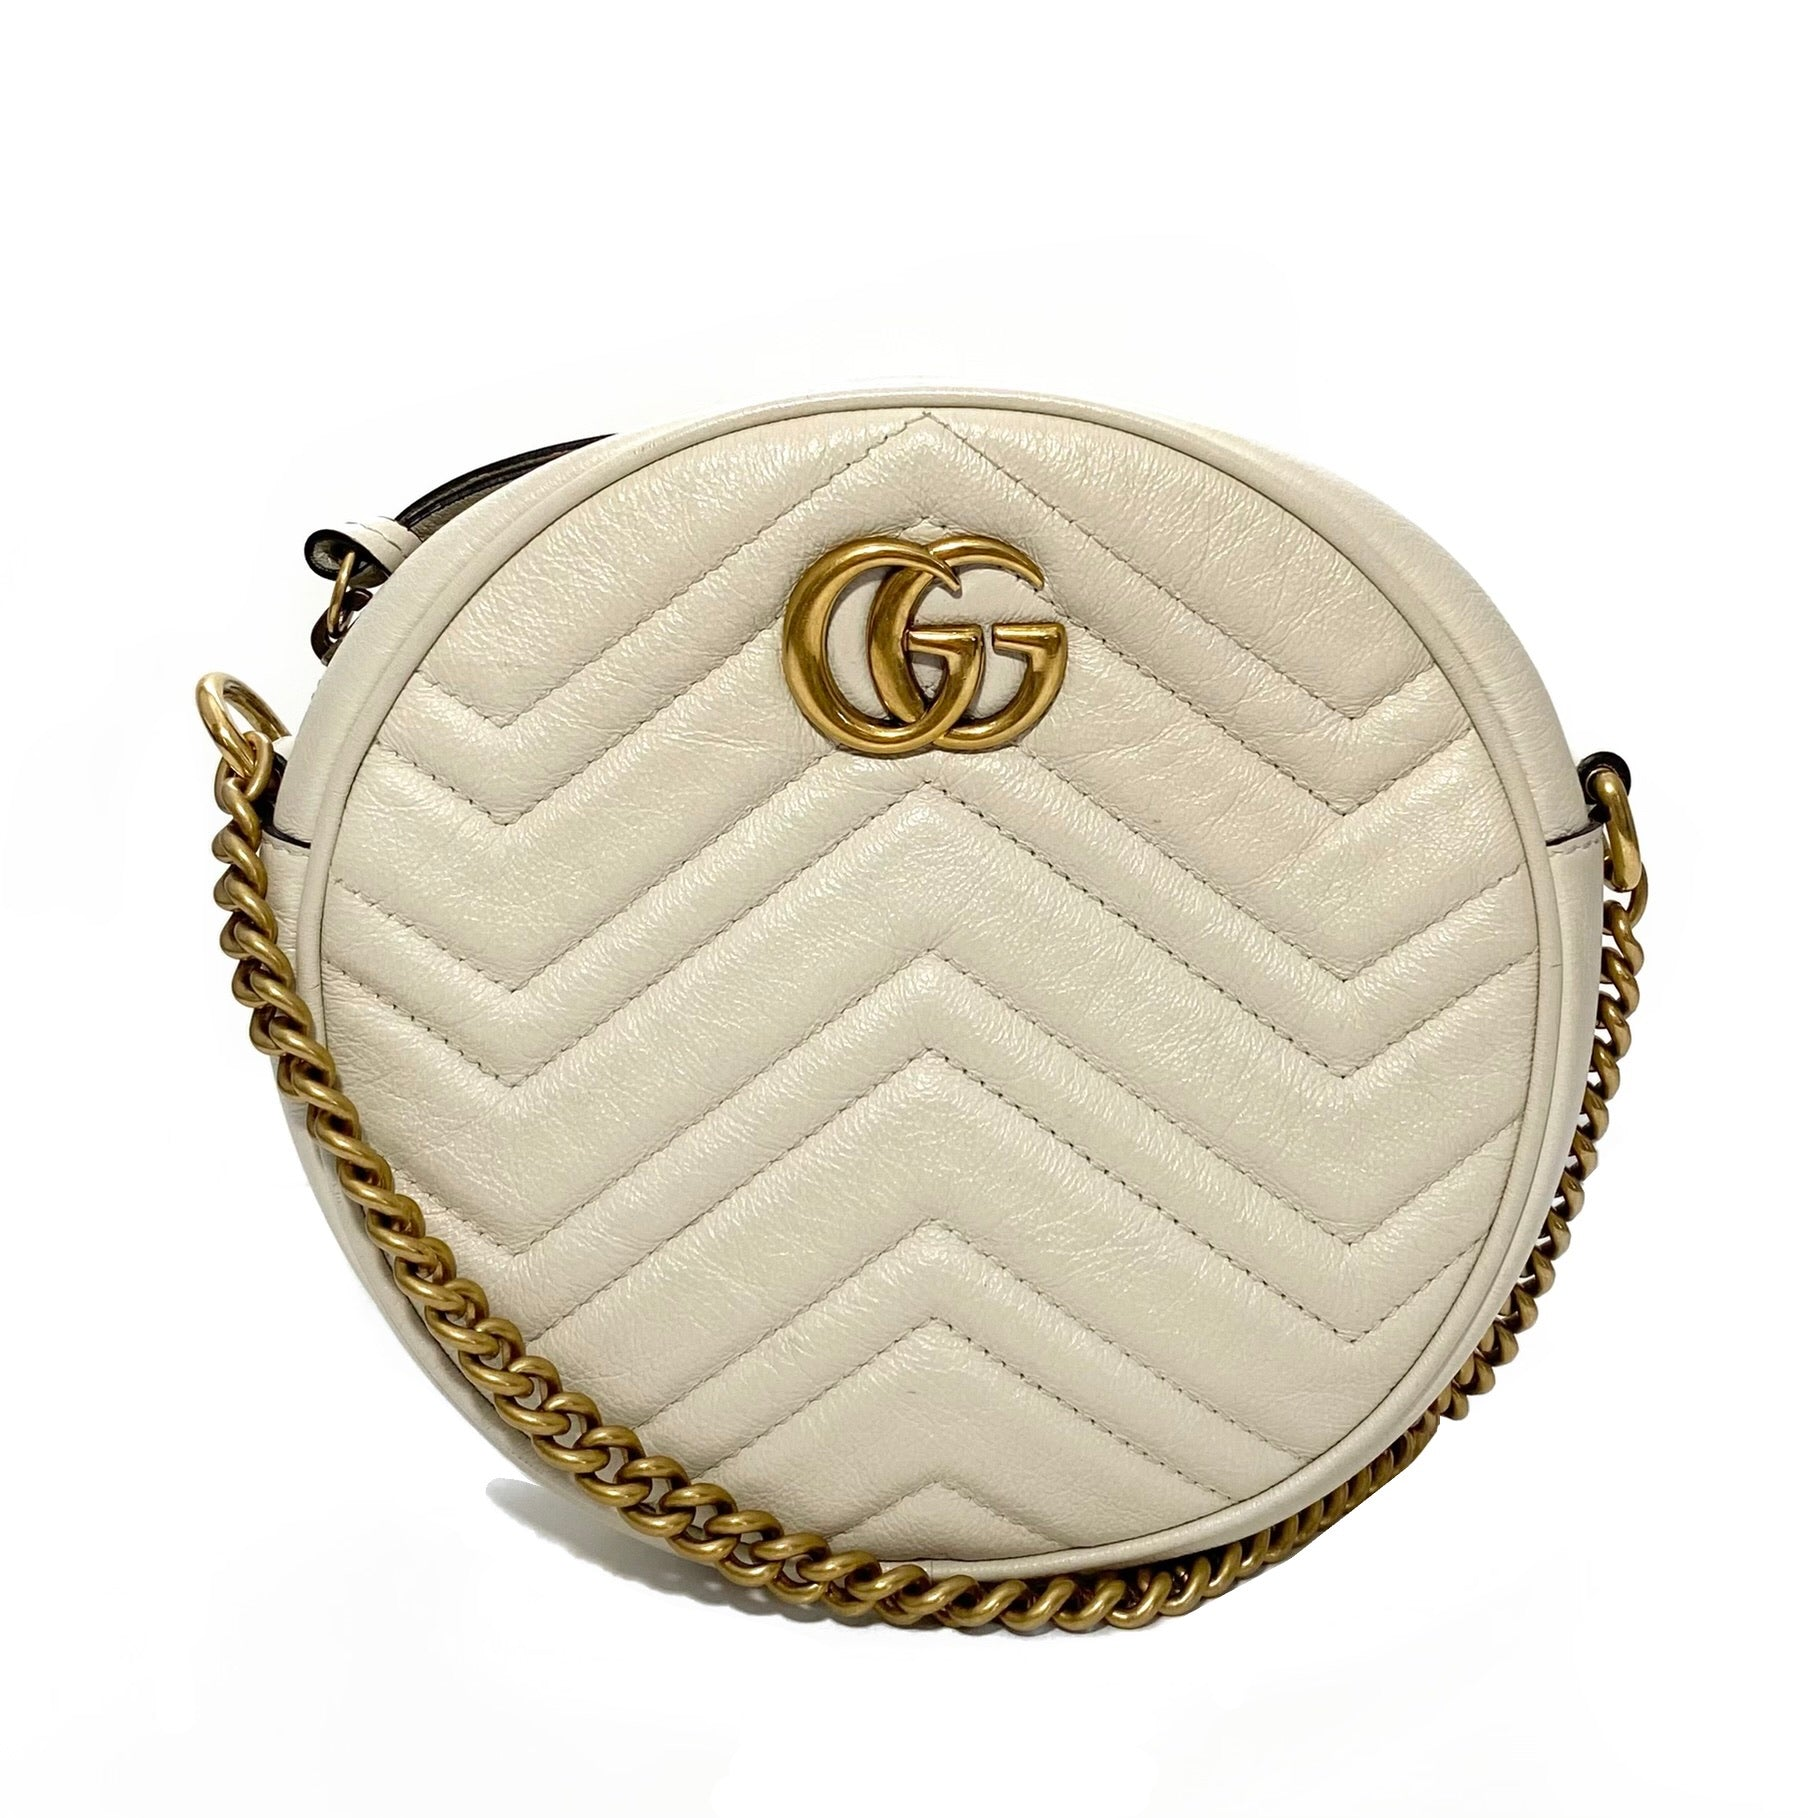 Marmont Mini Round Shoulder Bag